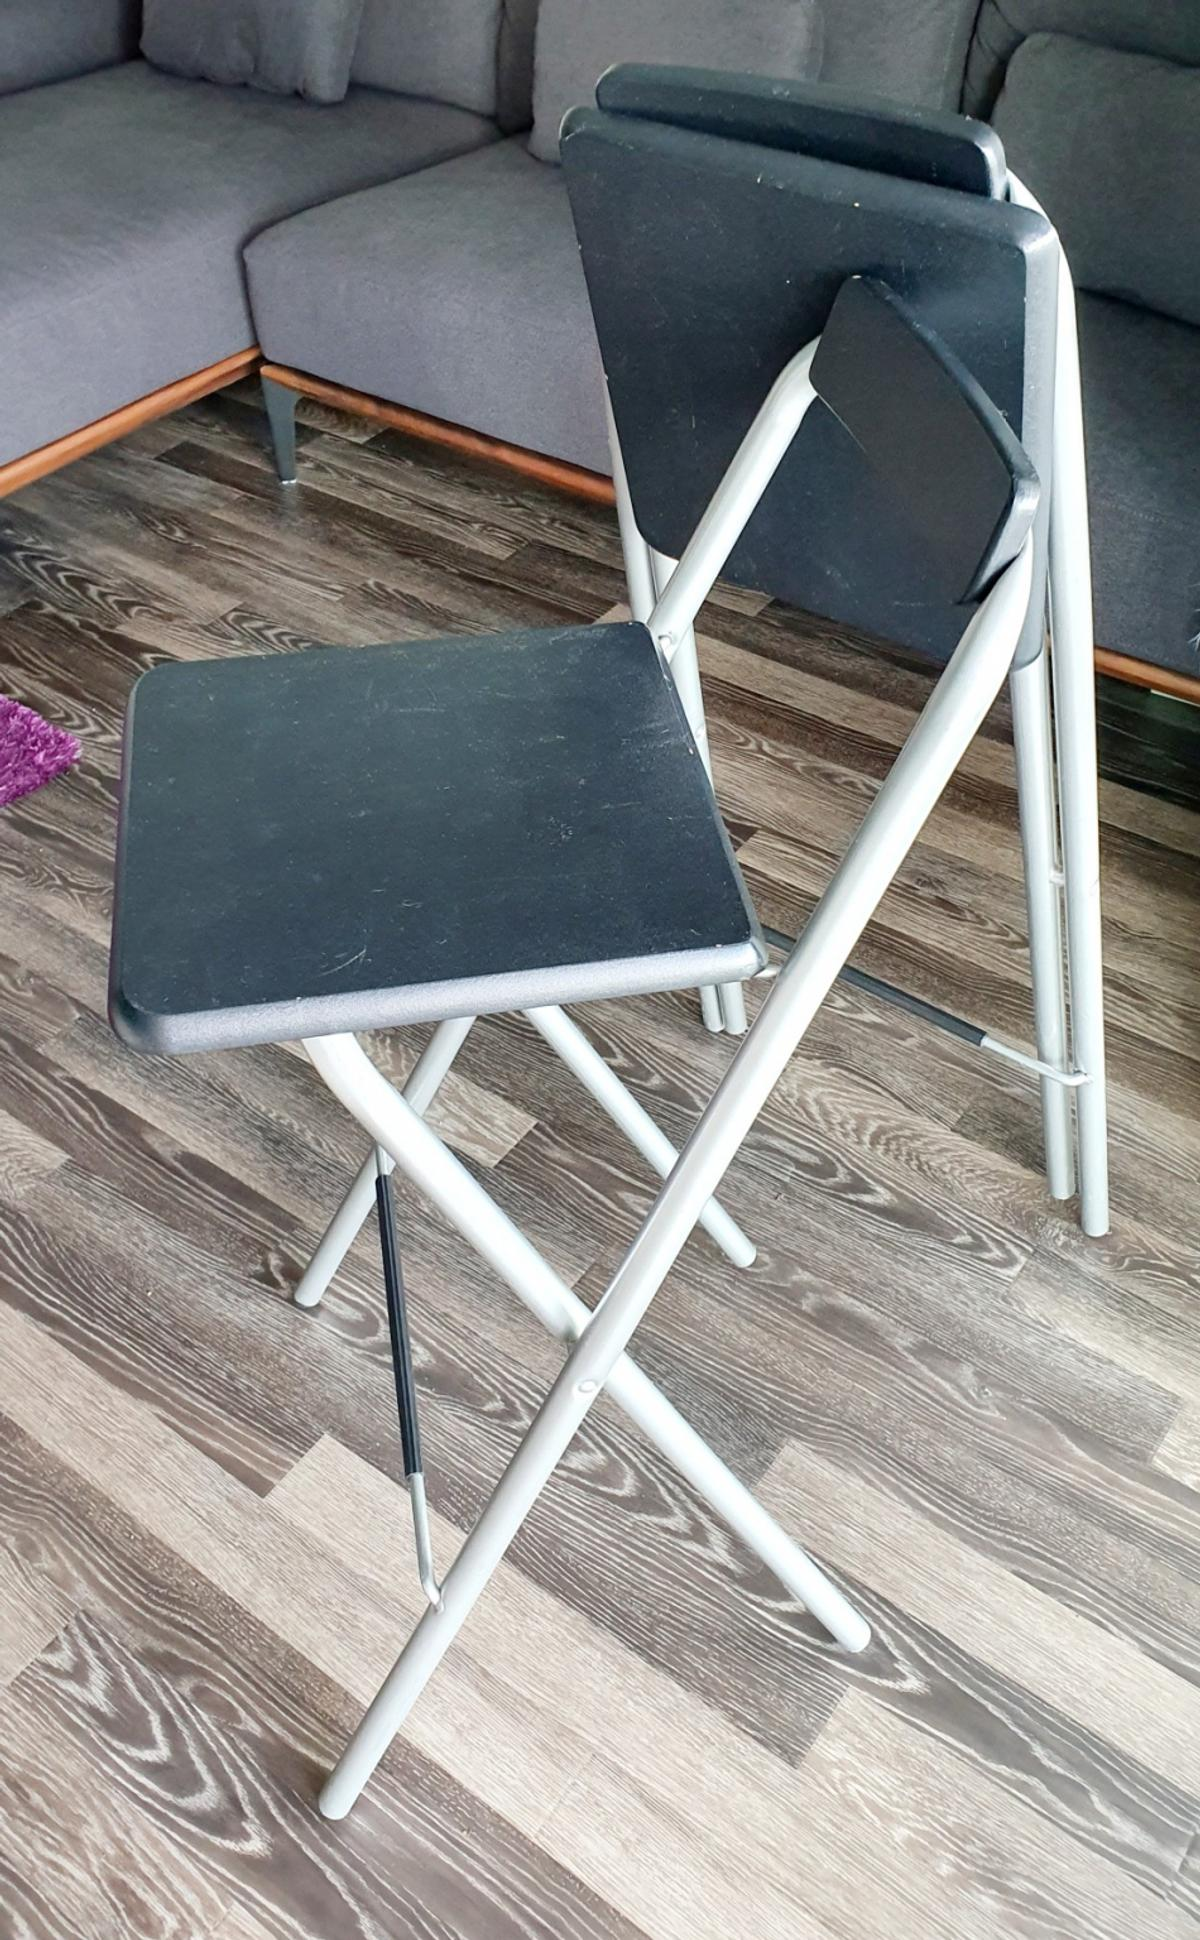 2 X Bar Stools Foldable From Argos In Se8 London For 15 00 For Sale Shpock